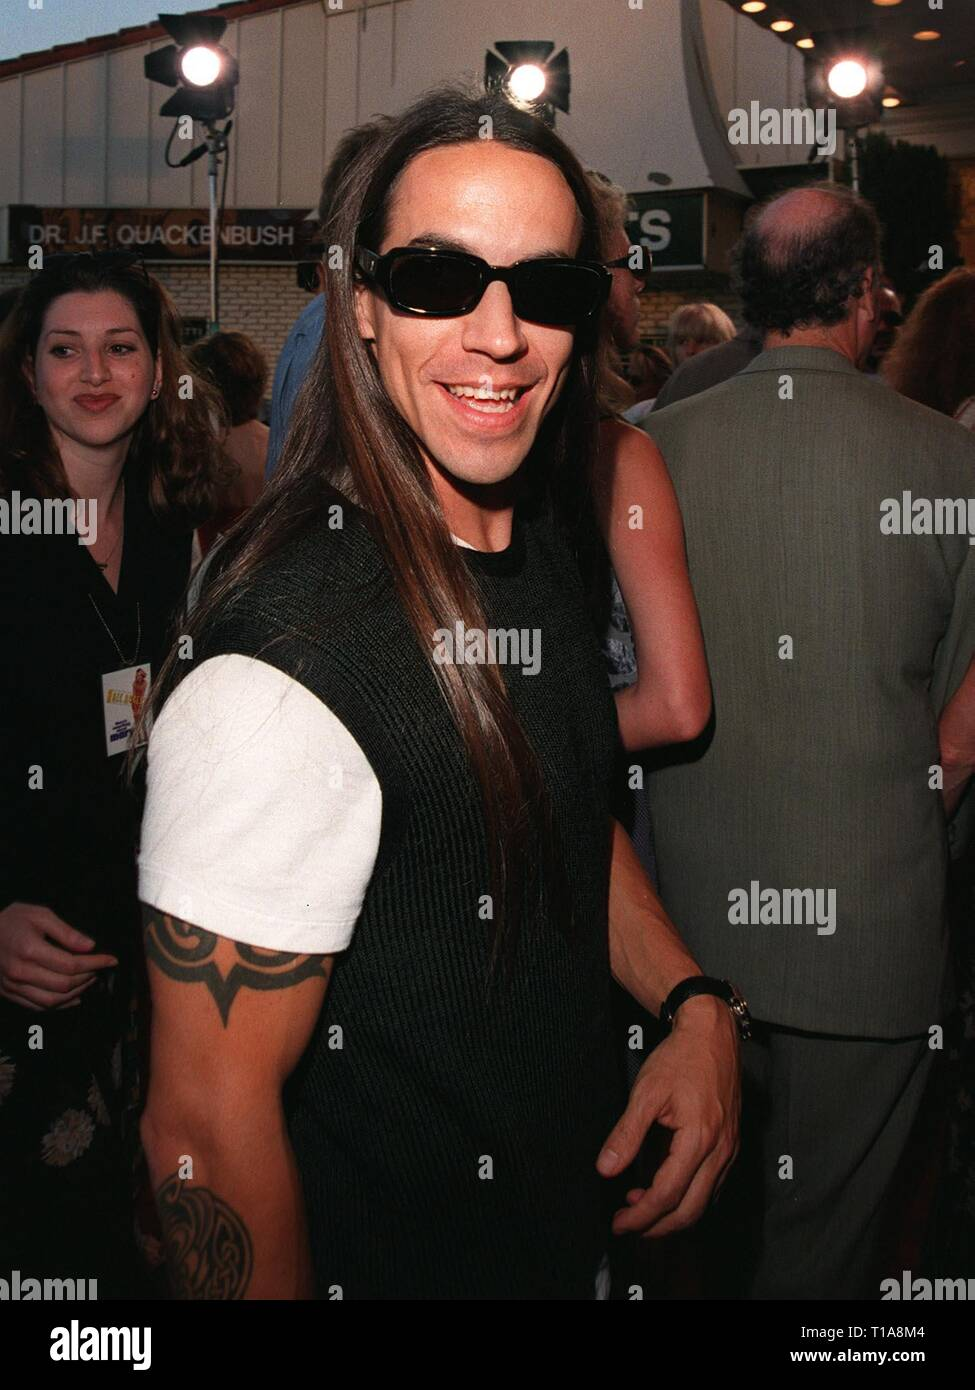 LOS ANGELES, CA - July 9, 1998: 'Red Hot Chilli Peppers' star ANTHONY KEIDIS at the world premiere, in Los Angeles, of 'There's Something About Mary.' - Stock Image